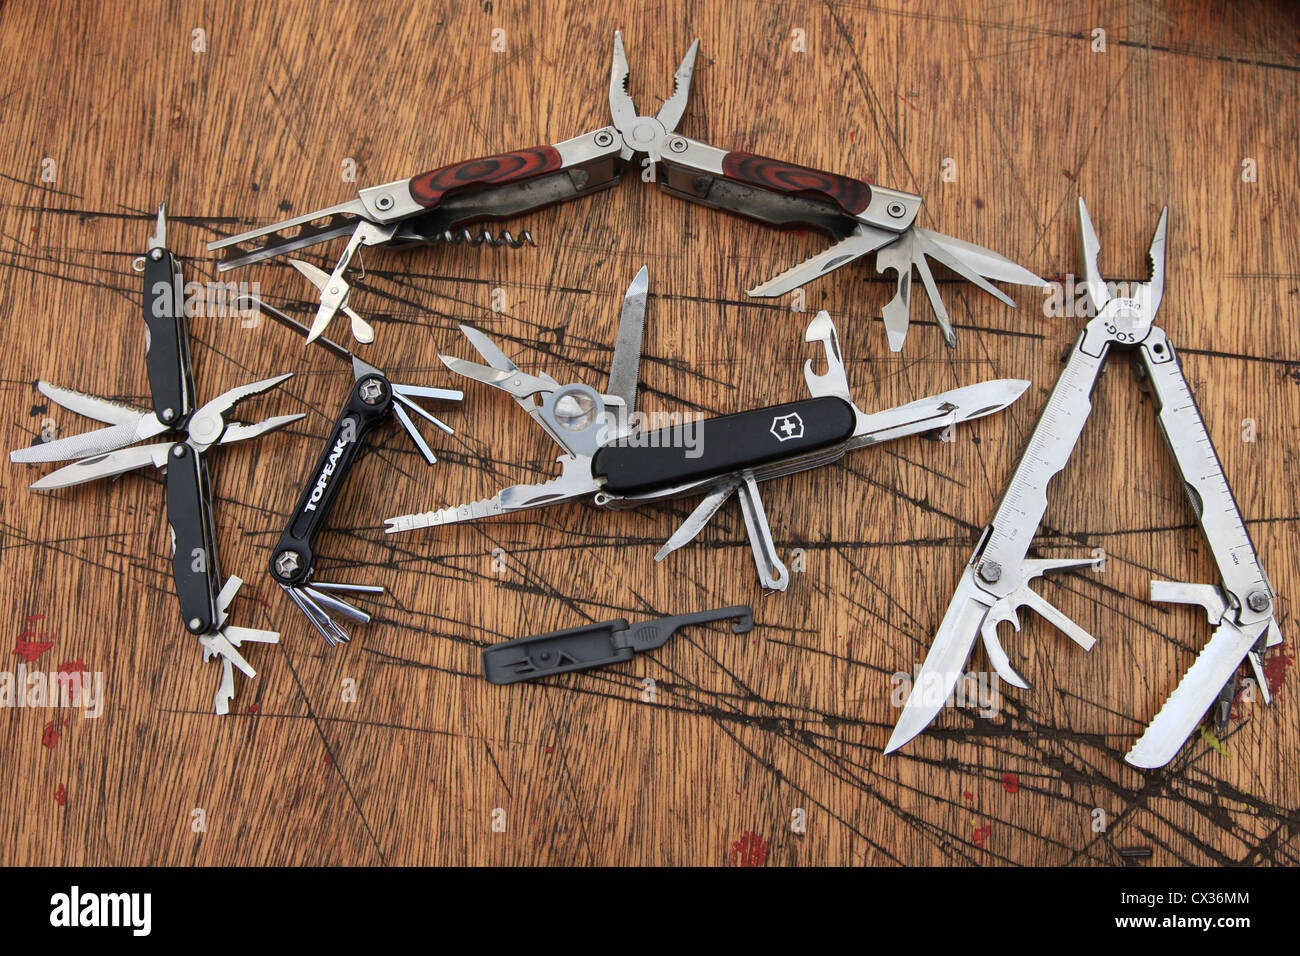 Penknives on a heavily worn table with their blades pulled out. - Stock Image